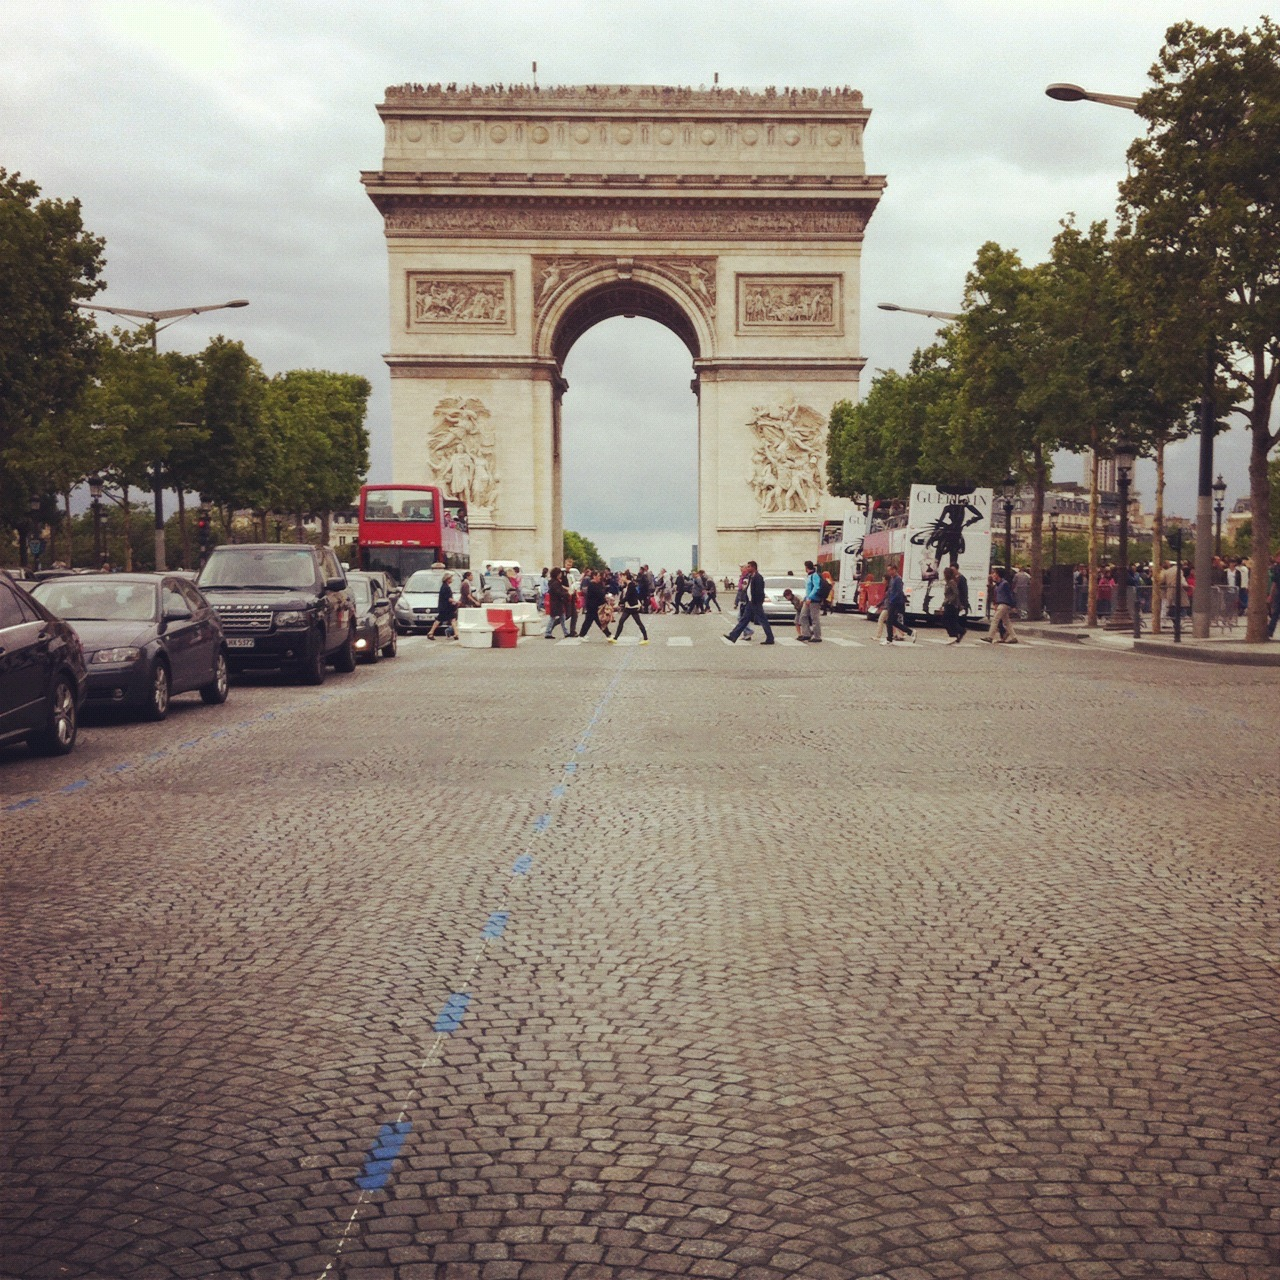 paris arc de triomphe.jpg